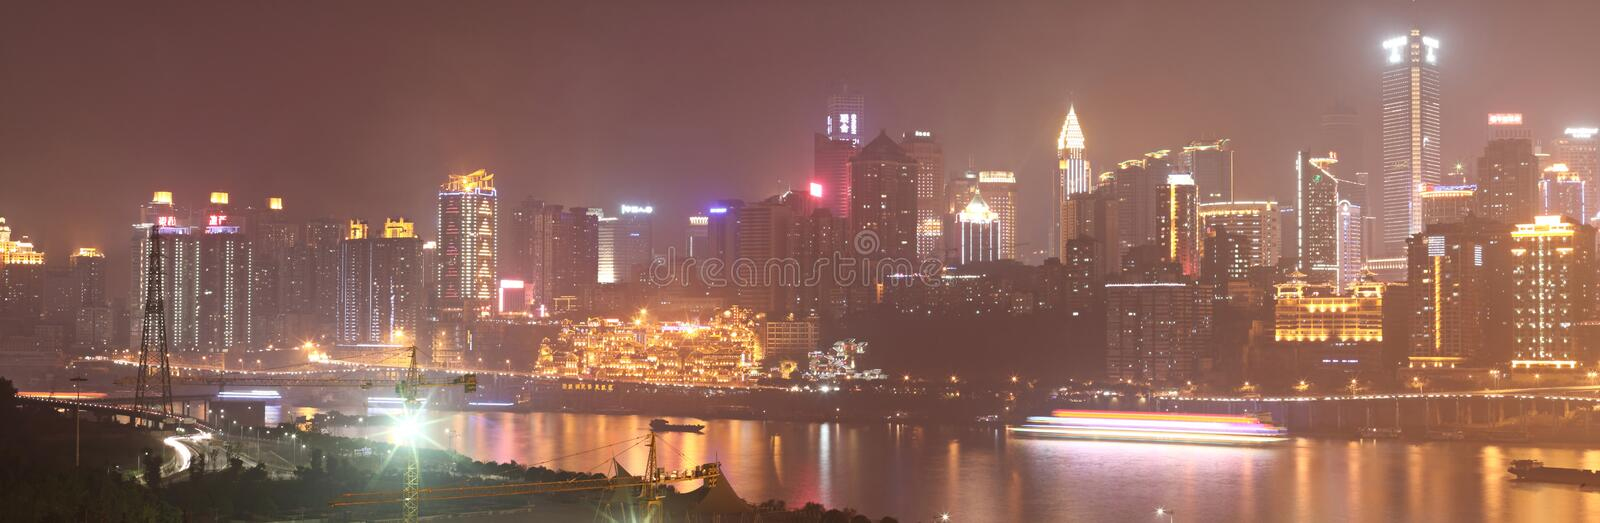 Chongqing night scene royalty free stock photo